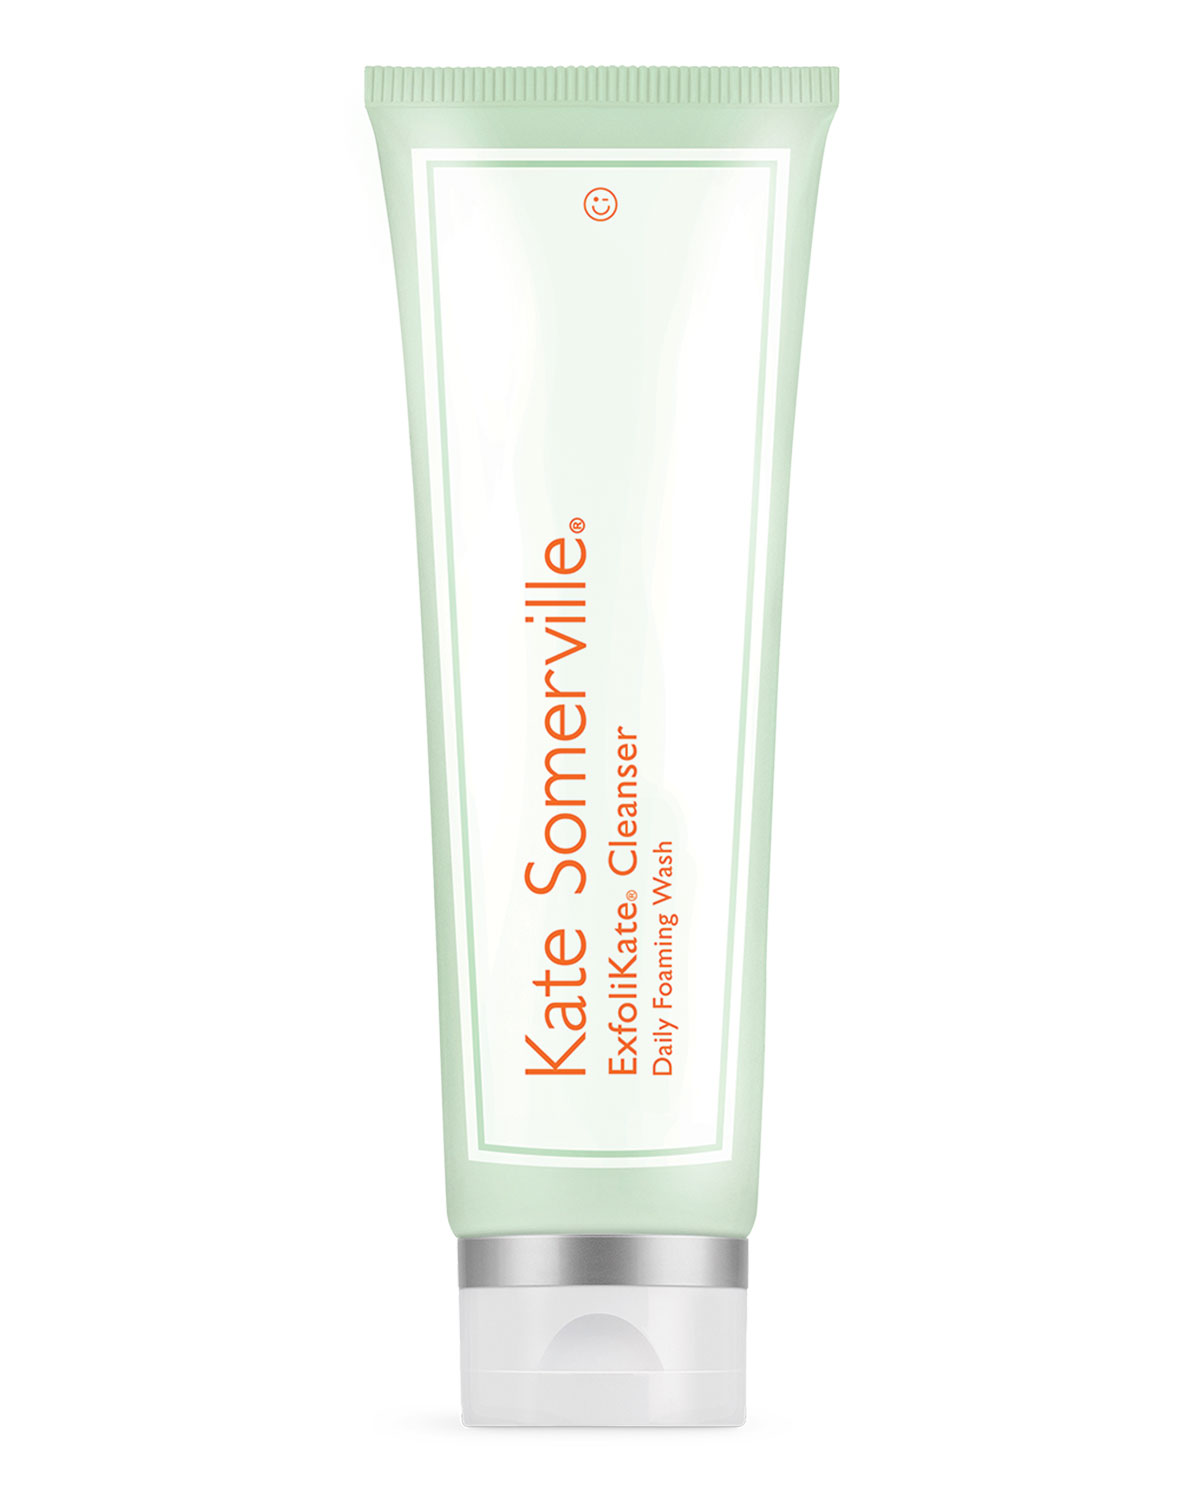 8 oz. ExfoliKate Cleanser Daily Foaming Wash